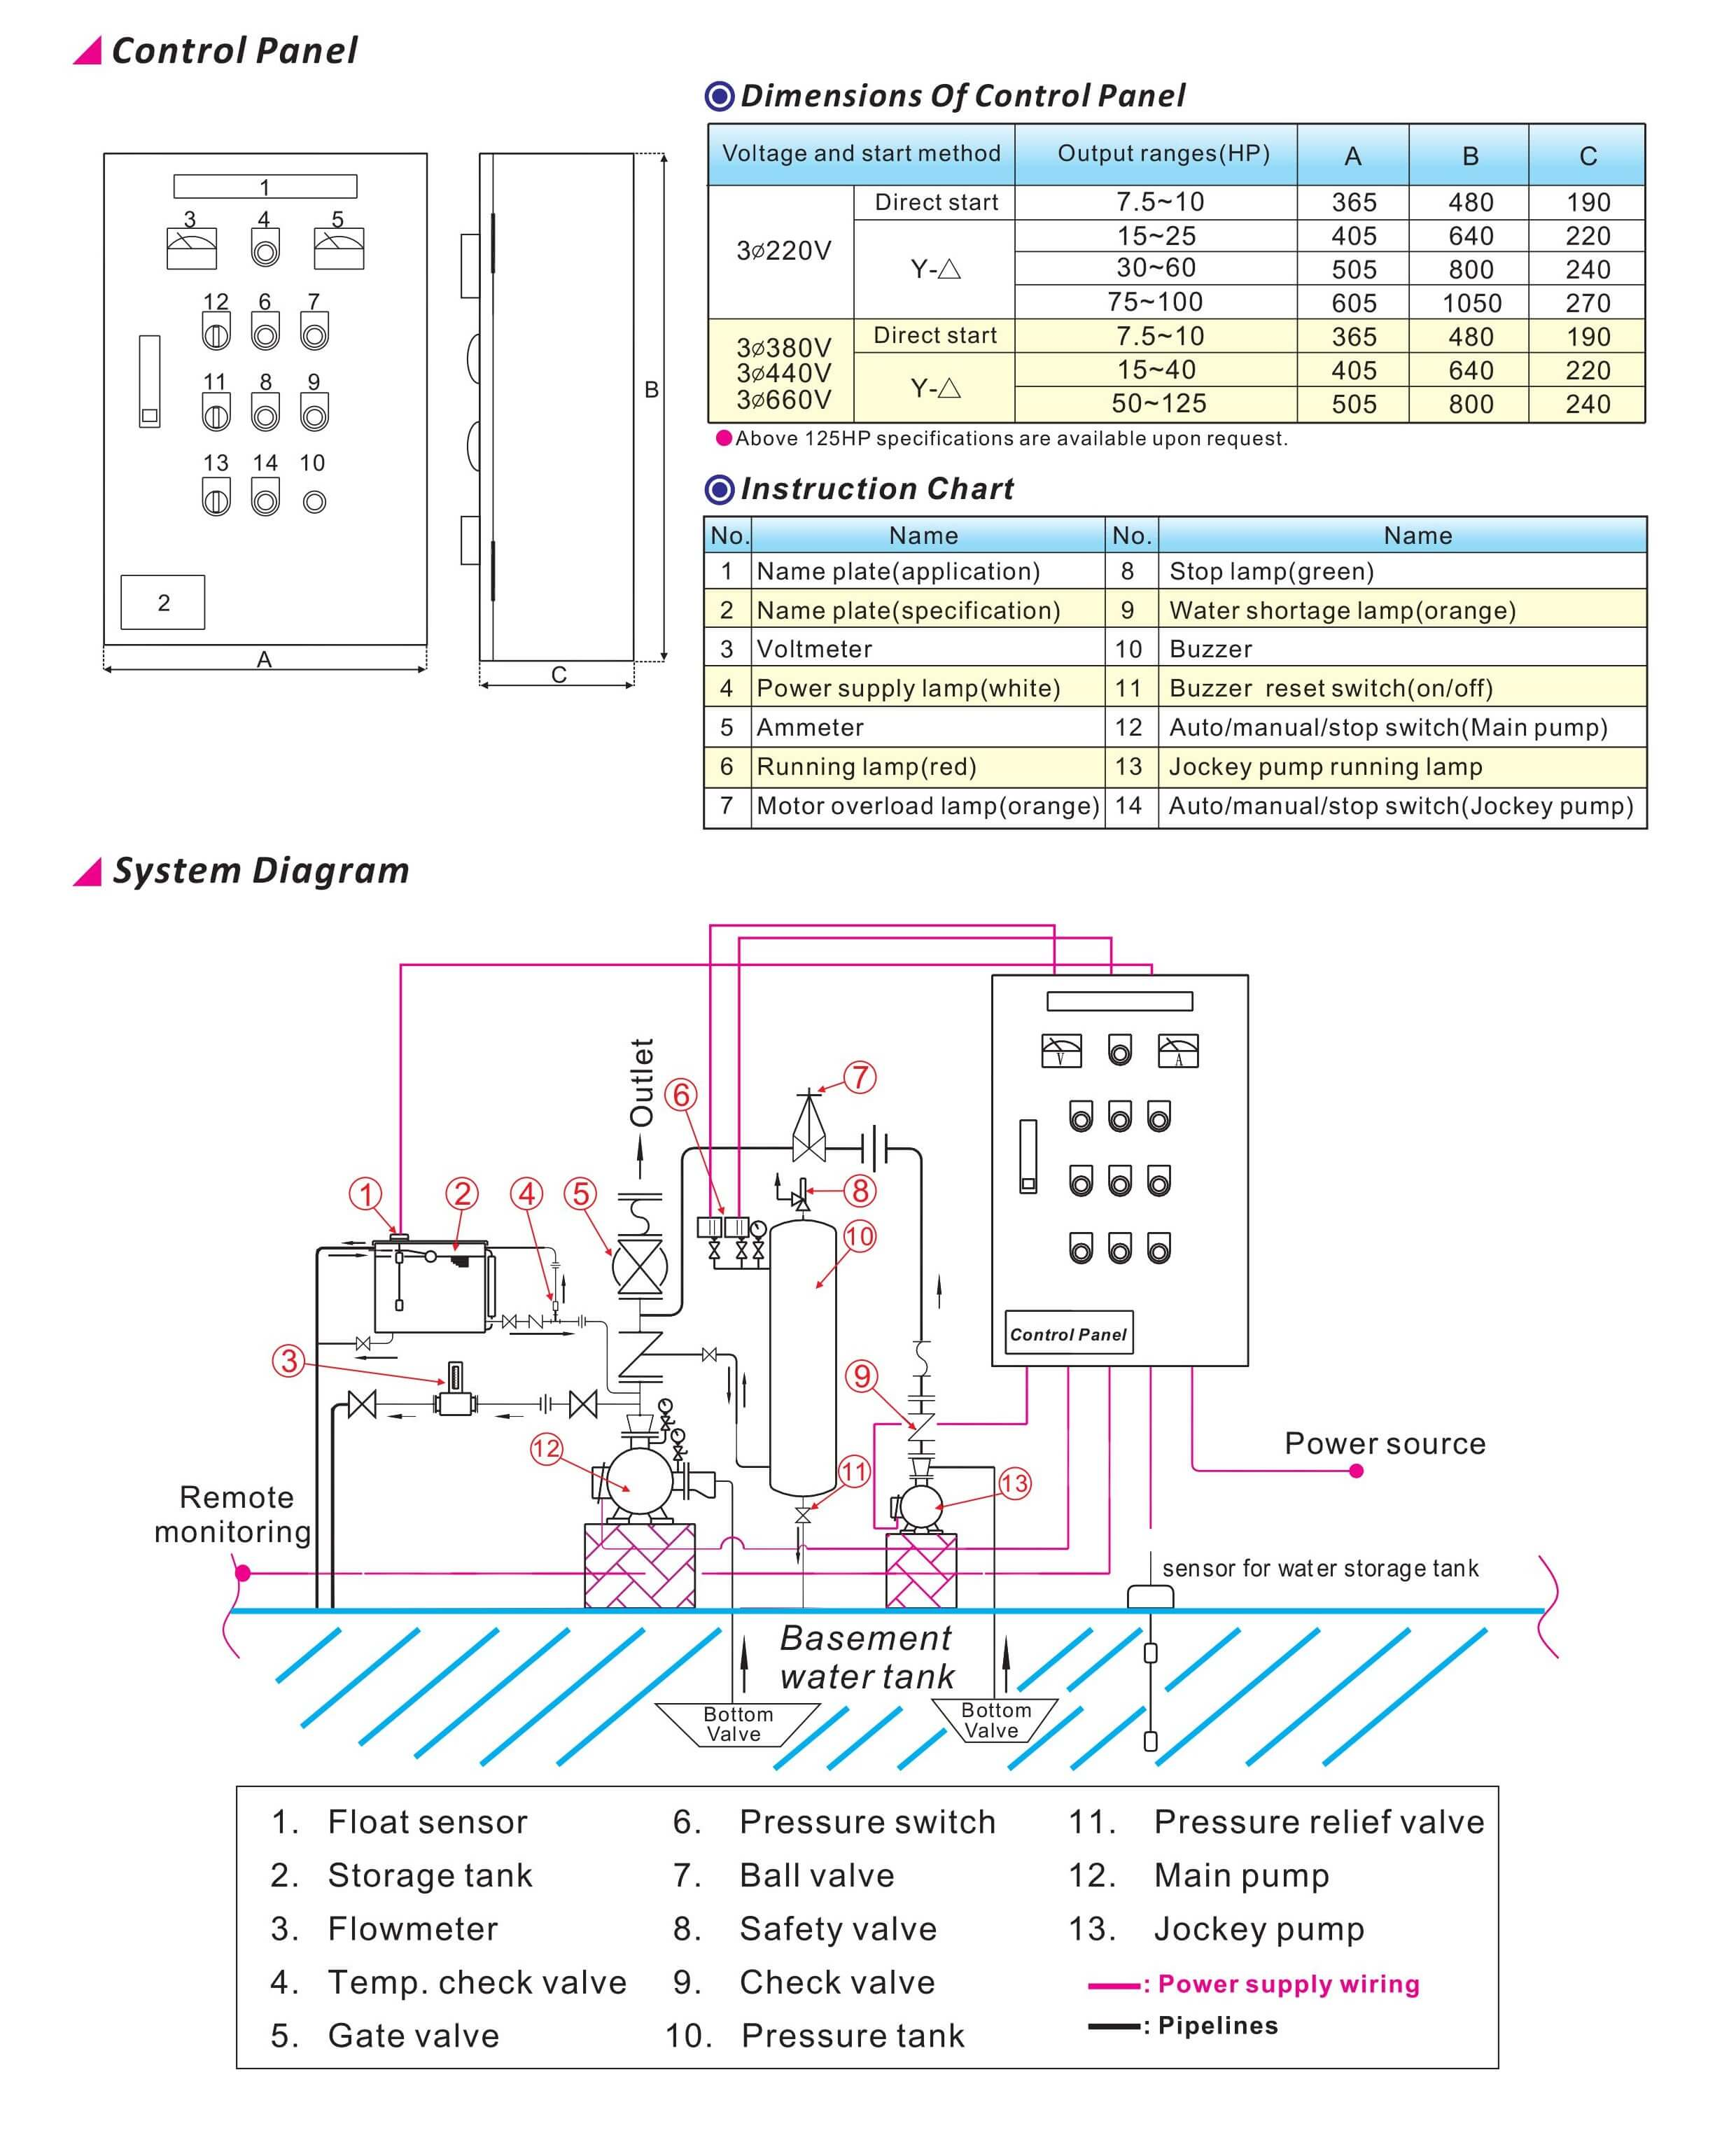 Jockey Pump Wiring Diagram Library Pressure Tank 102 Output Range 1511kw Rated Head38200m Capacity